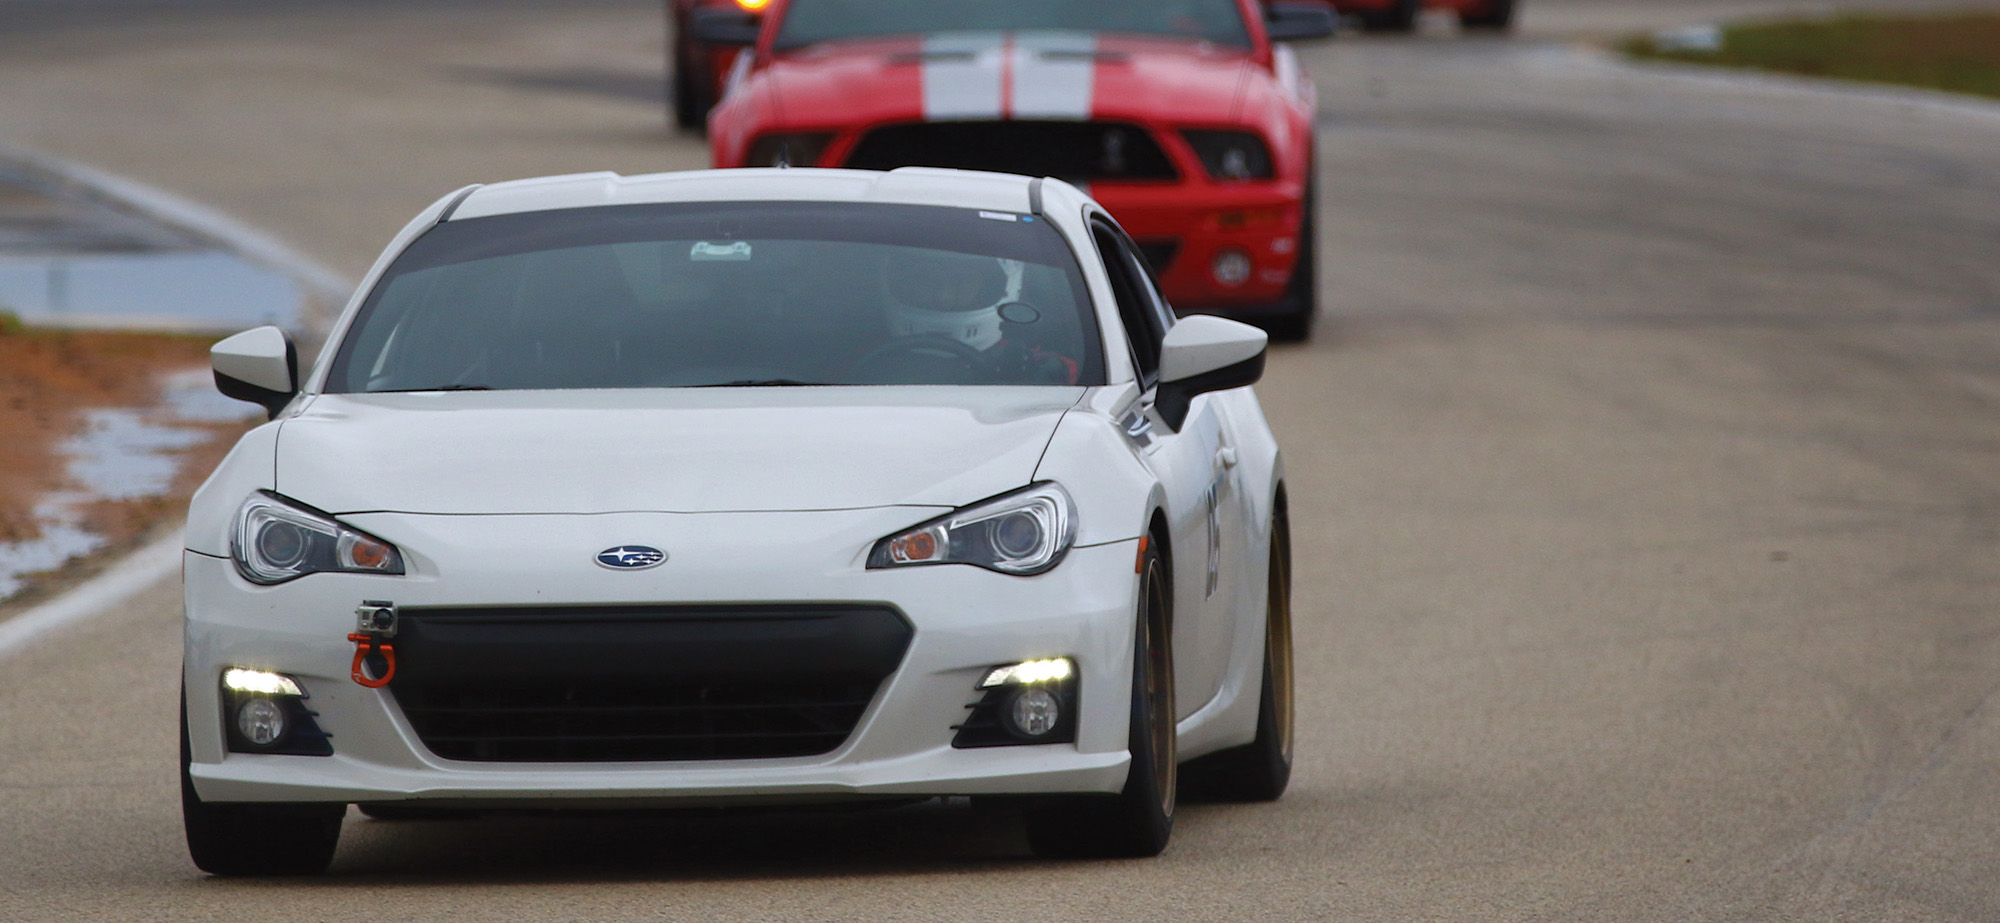 top 5 favorite track day cars articles grassroots motorsports rh grassrootsmotorsports com